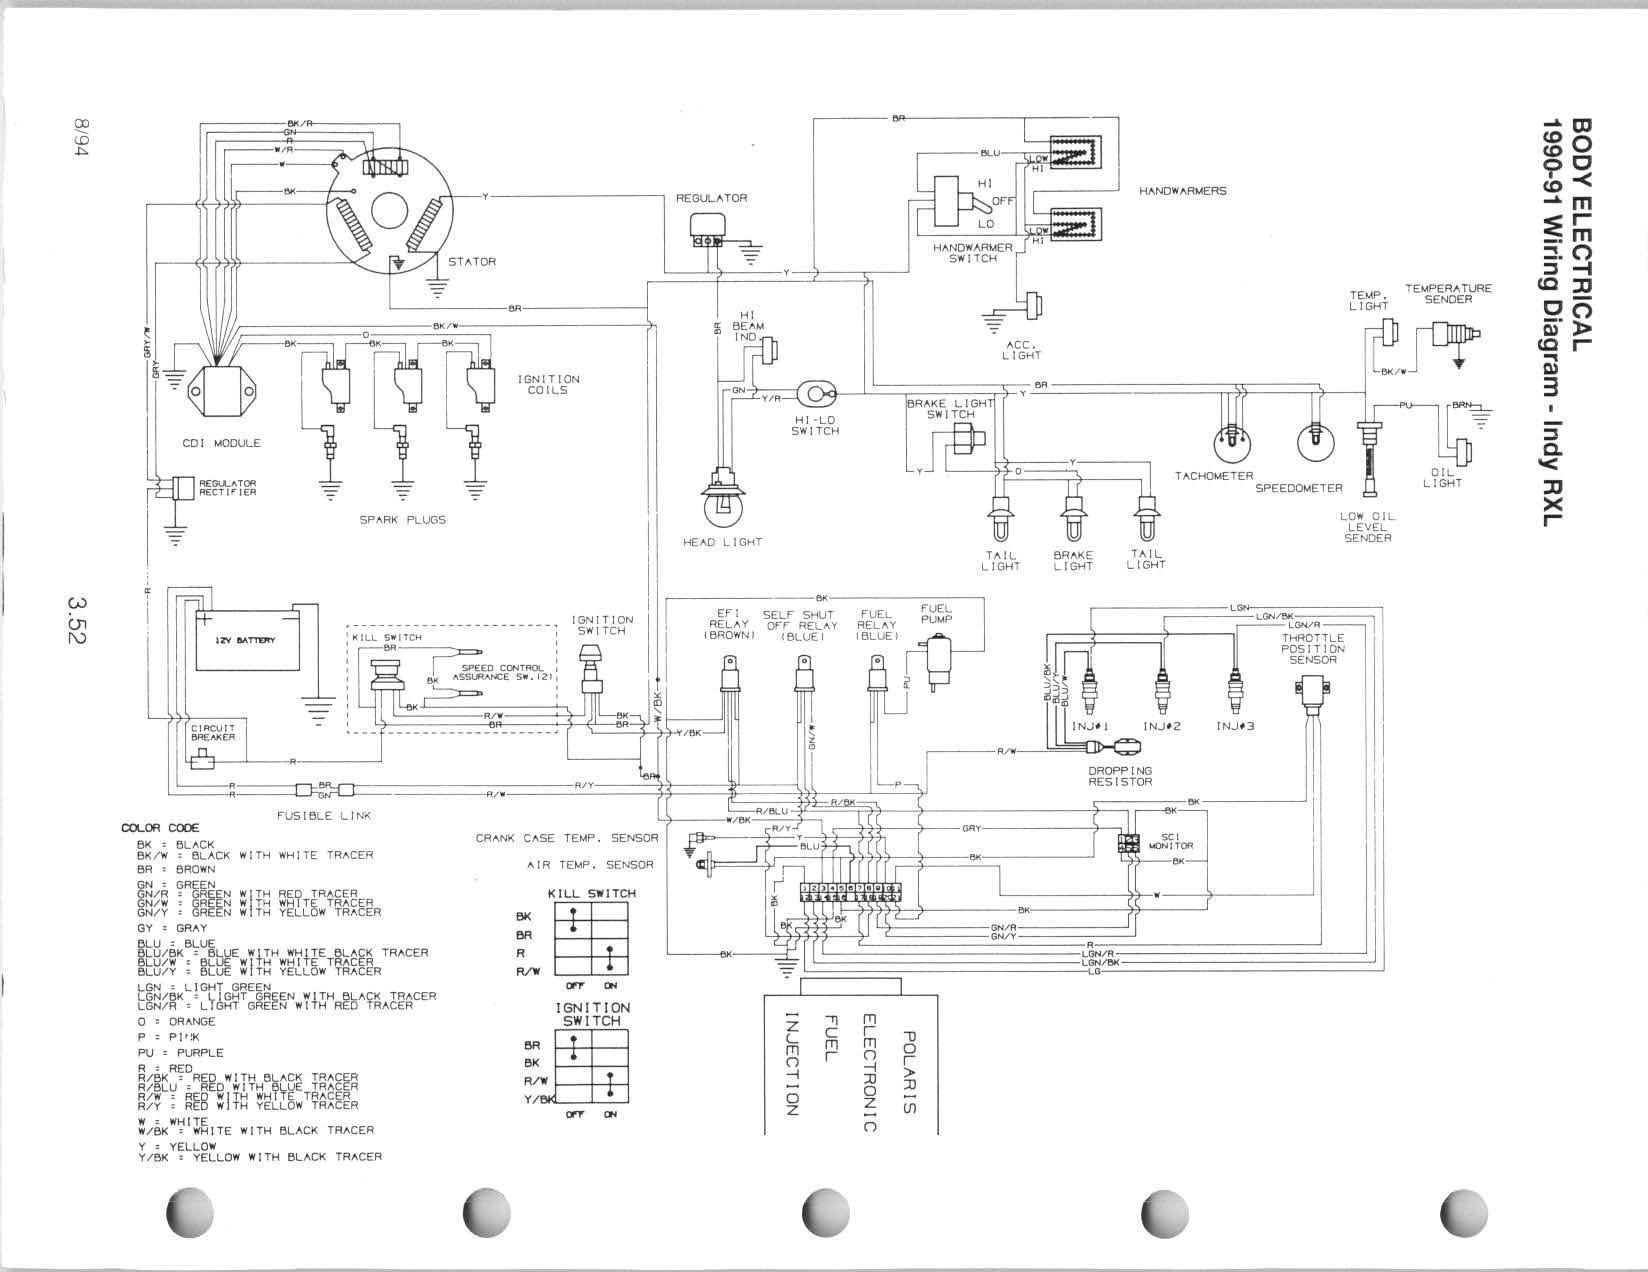 polaris ranger fuel pump wiring diagram Collection-Full Size of Wiring Diagram Wiringam Polaris Ranger Xp Picture Ideas 21 2007 Polaris 20-o